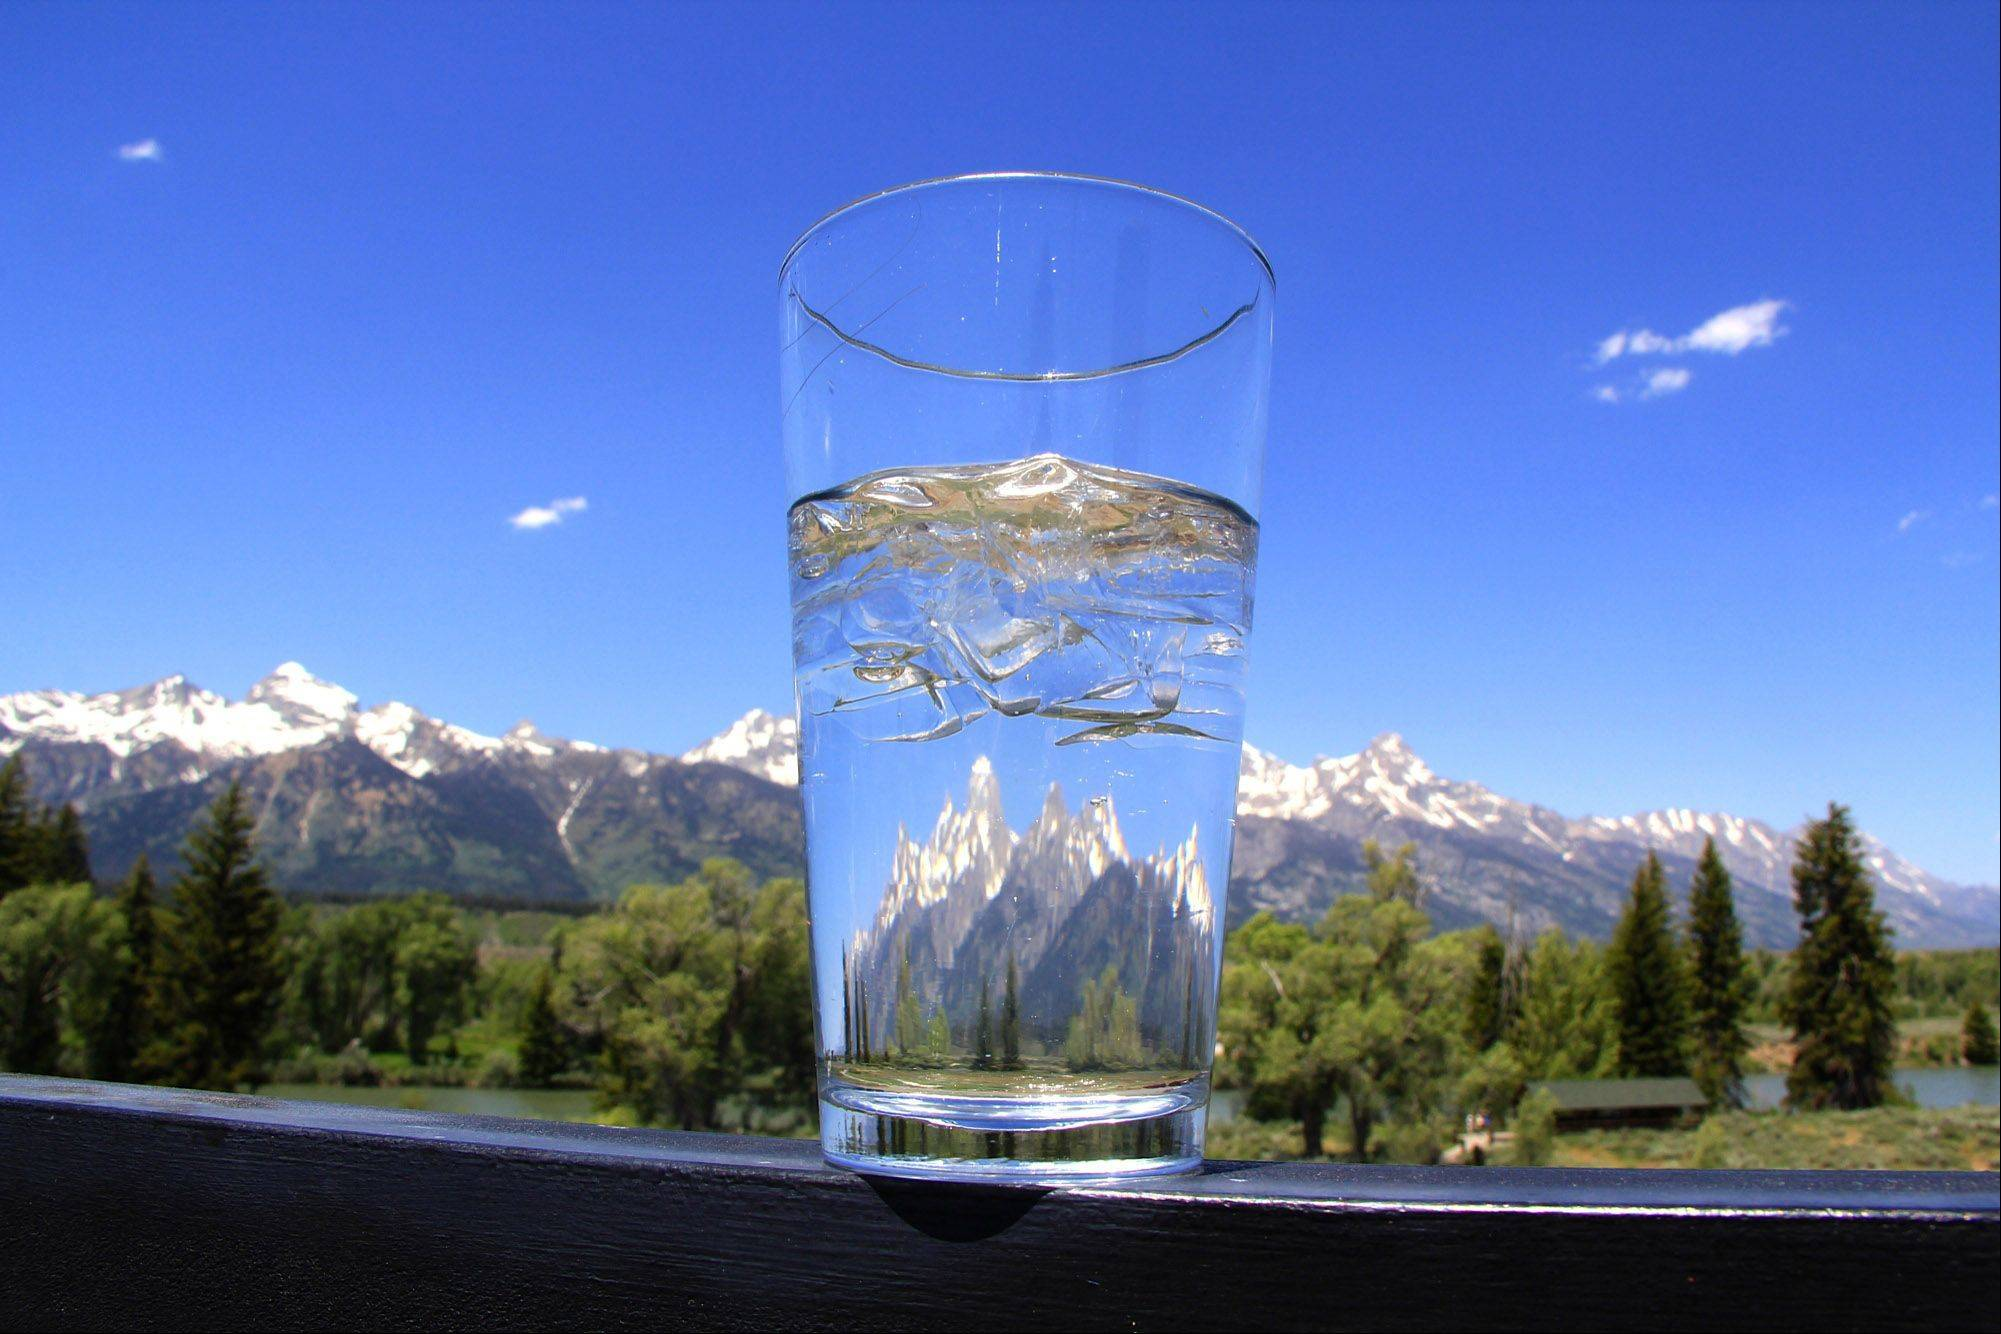 The Grand Teton mountains are reflected in a glass on the balcony of a restaurant overlooking the Teton range last June on a beautiful Wyoming day.